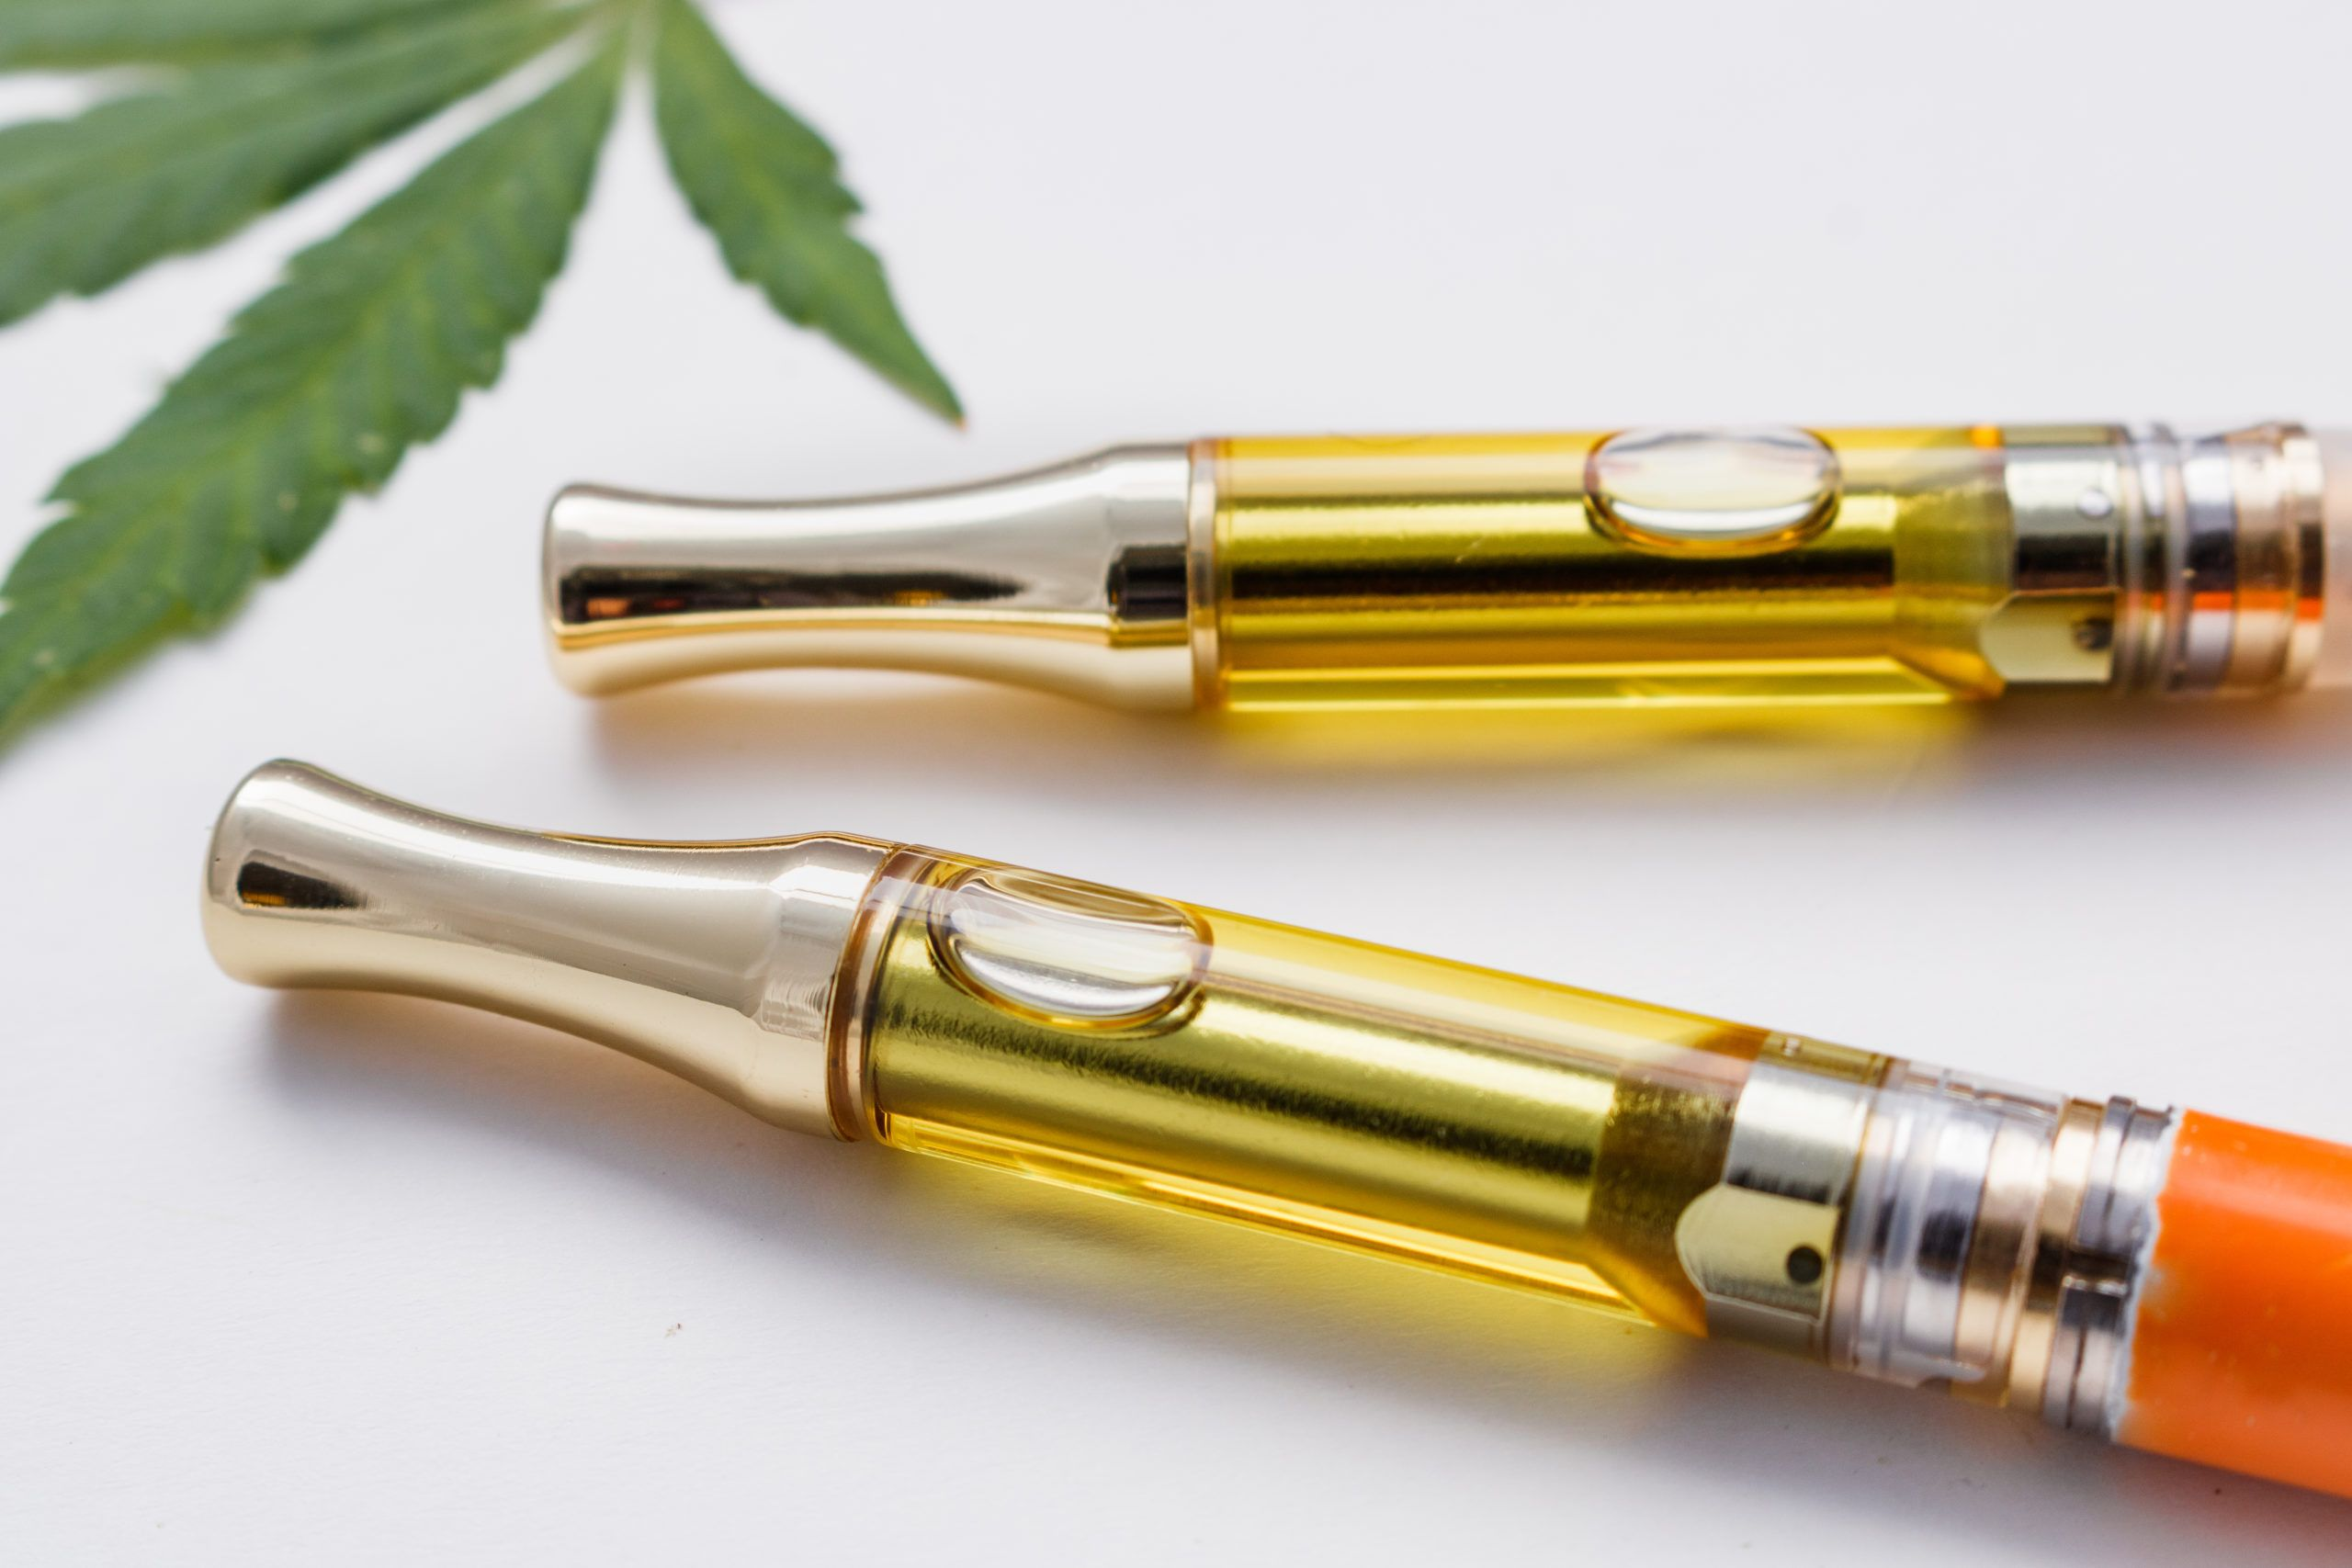 vape pens with a marijuana leaf in the background